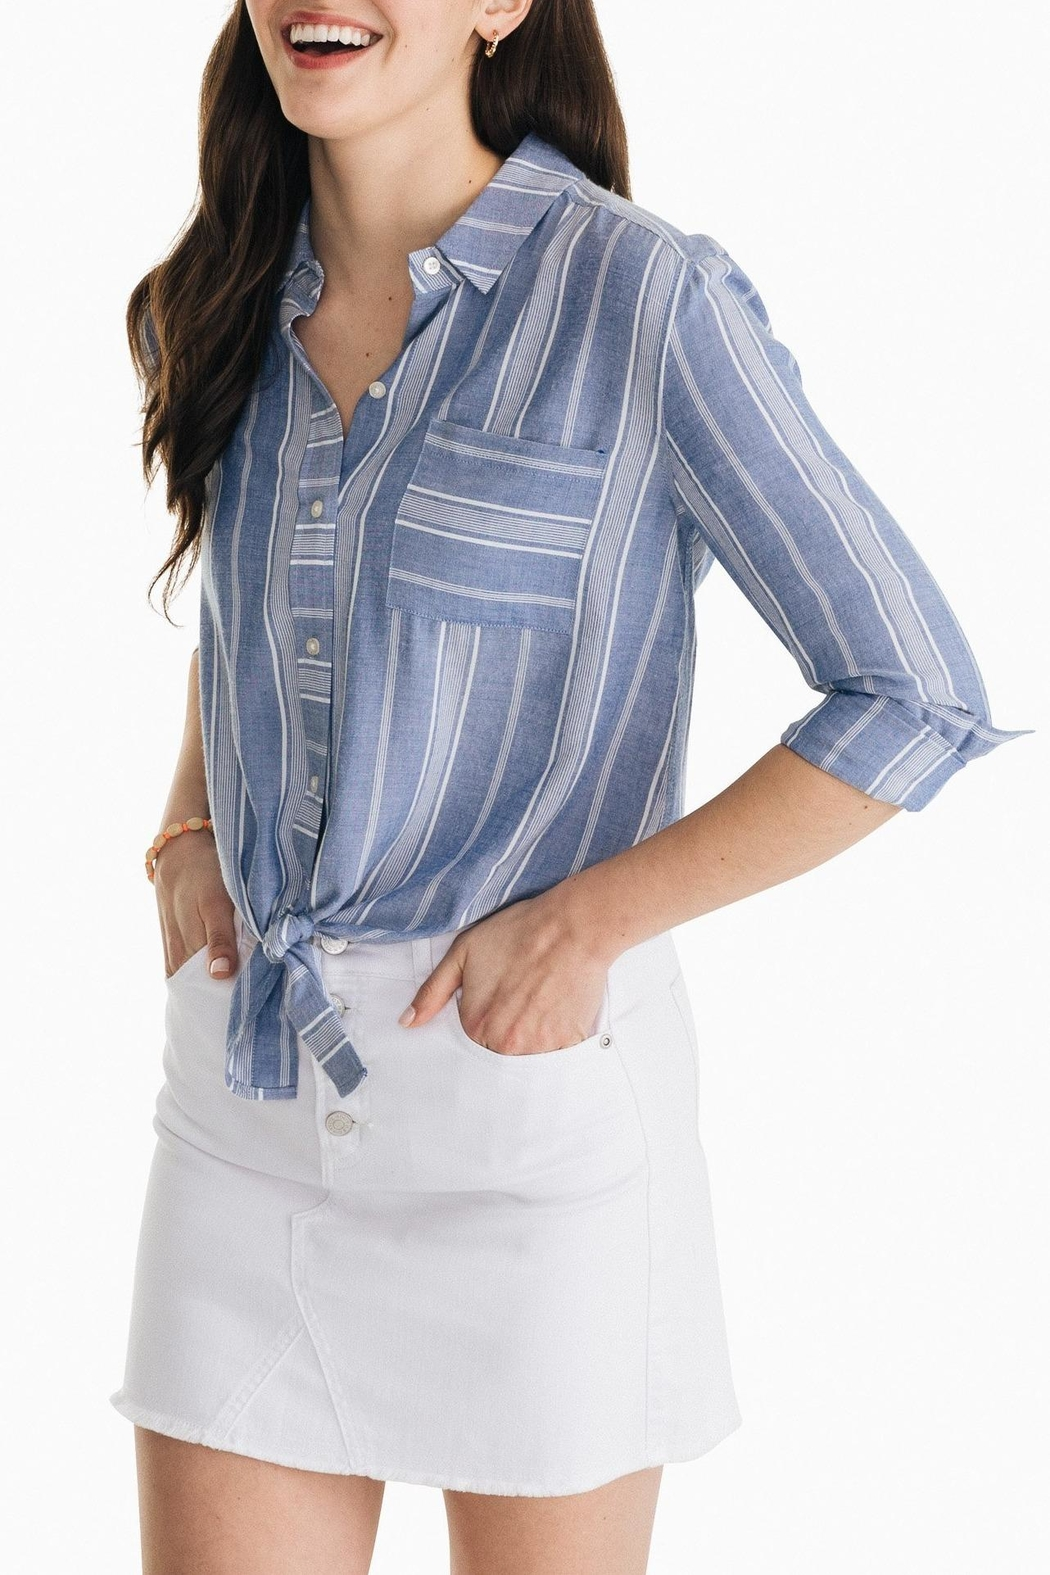 Southern Tide Madelyn Tie-Front Shirt - Main Image